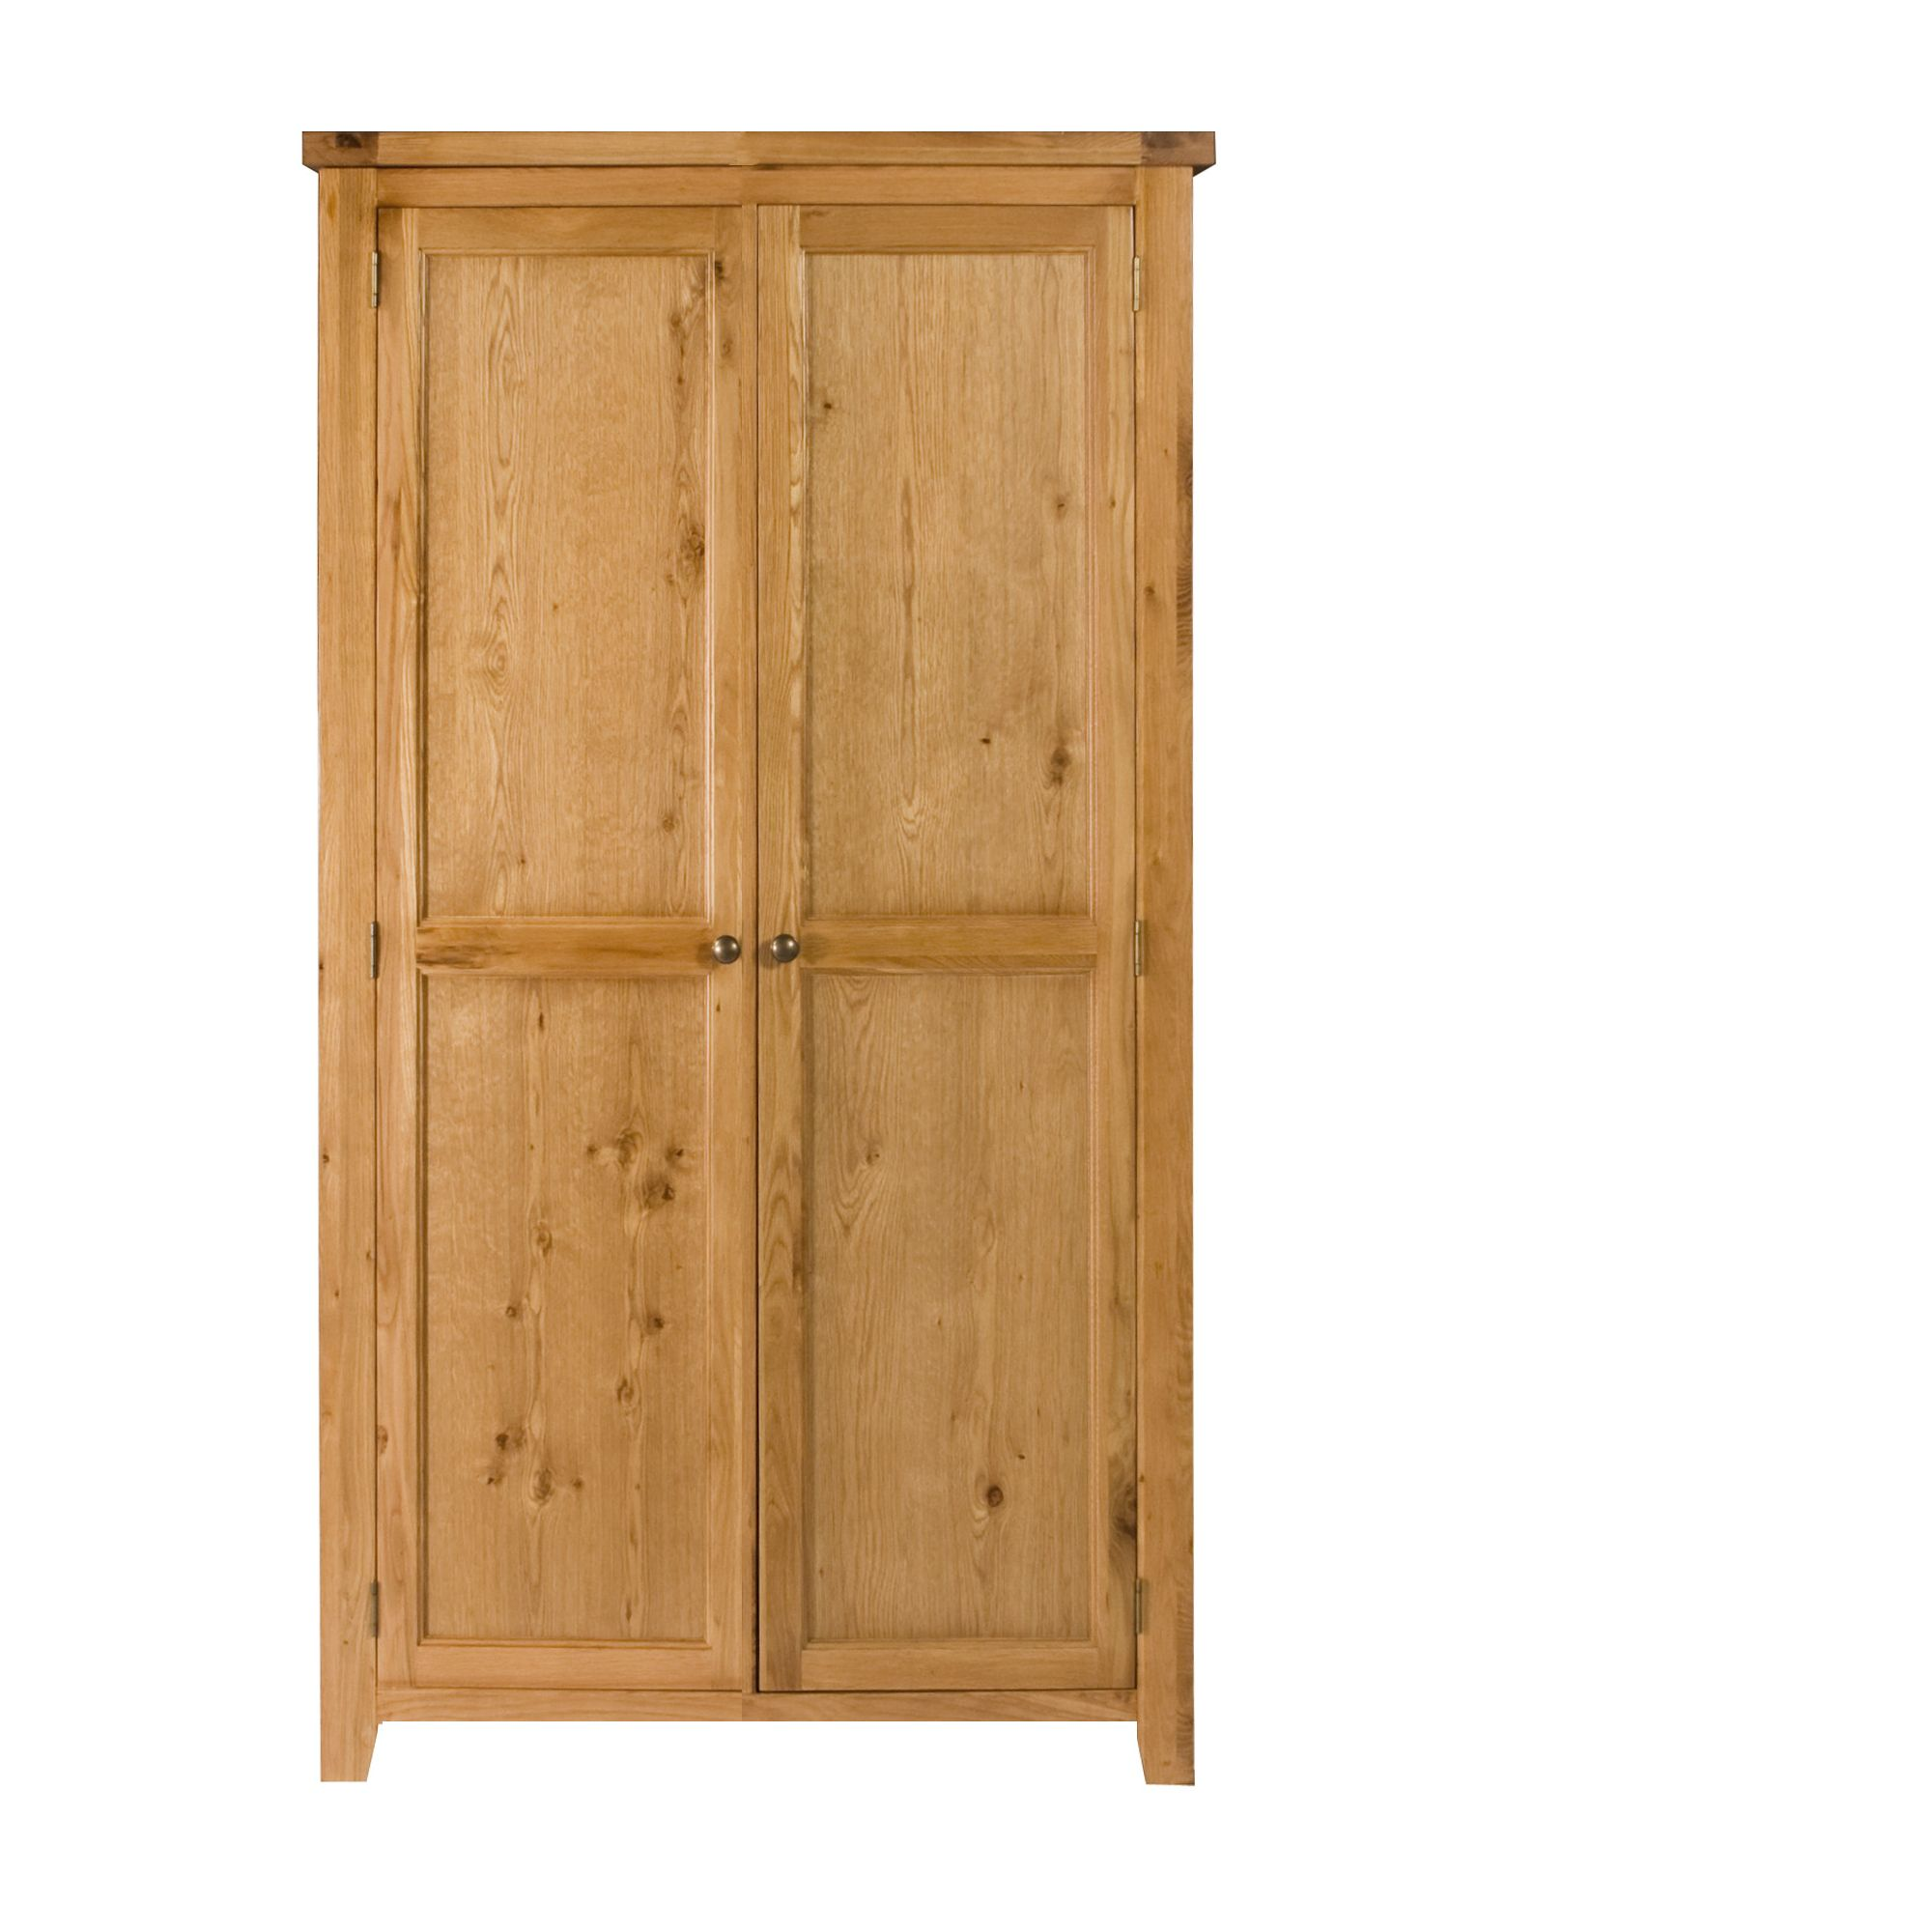 Elements Ludmilla Ladies Two Door Wardrobe in Warm Lacquer at Tesco Direct